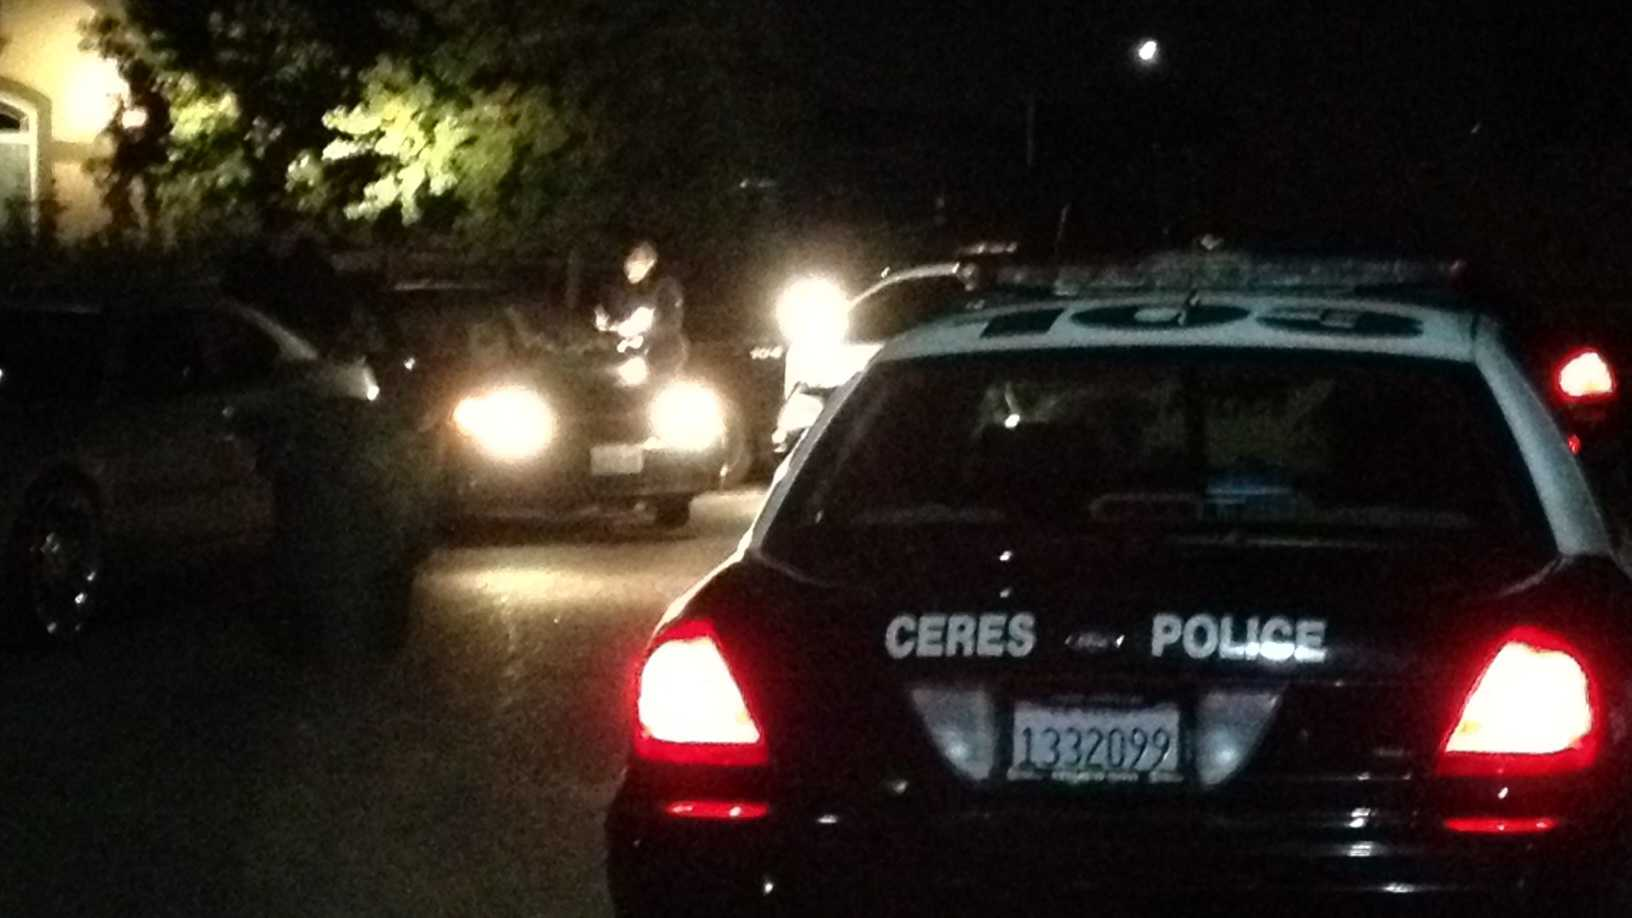 Ceres Police